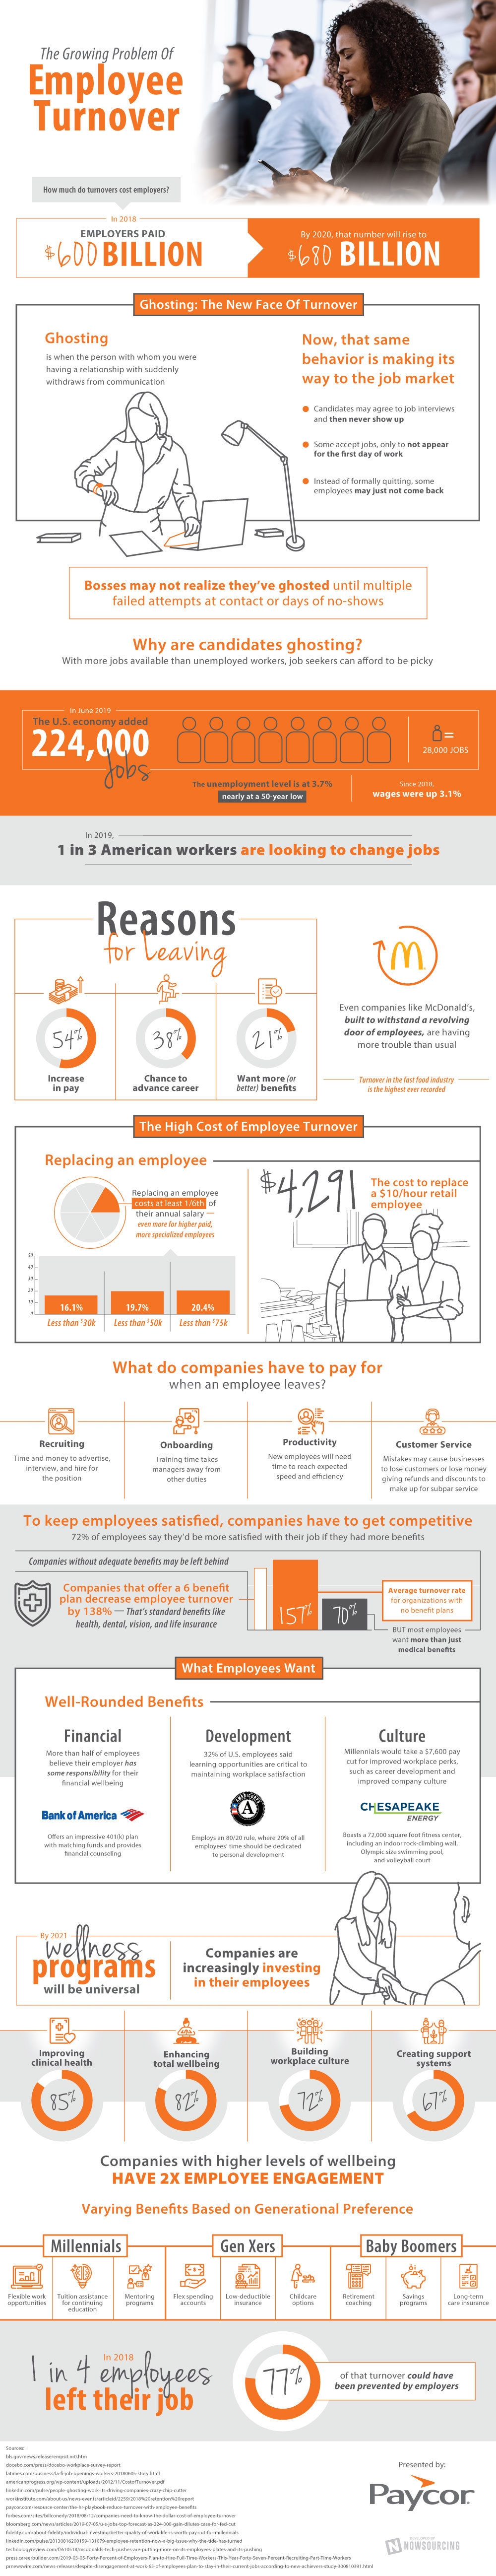 The Growing Problem (And Cost) of Employee Turnover [Infographic]